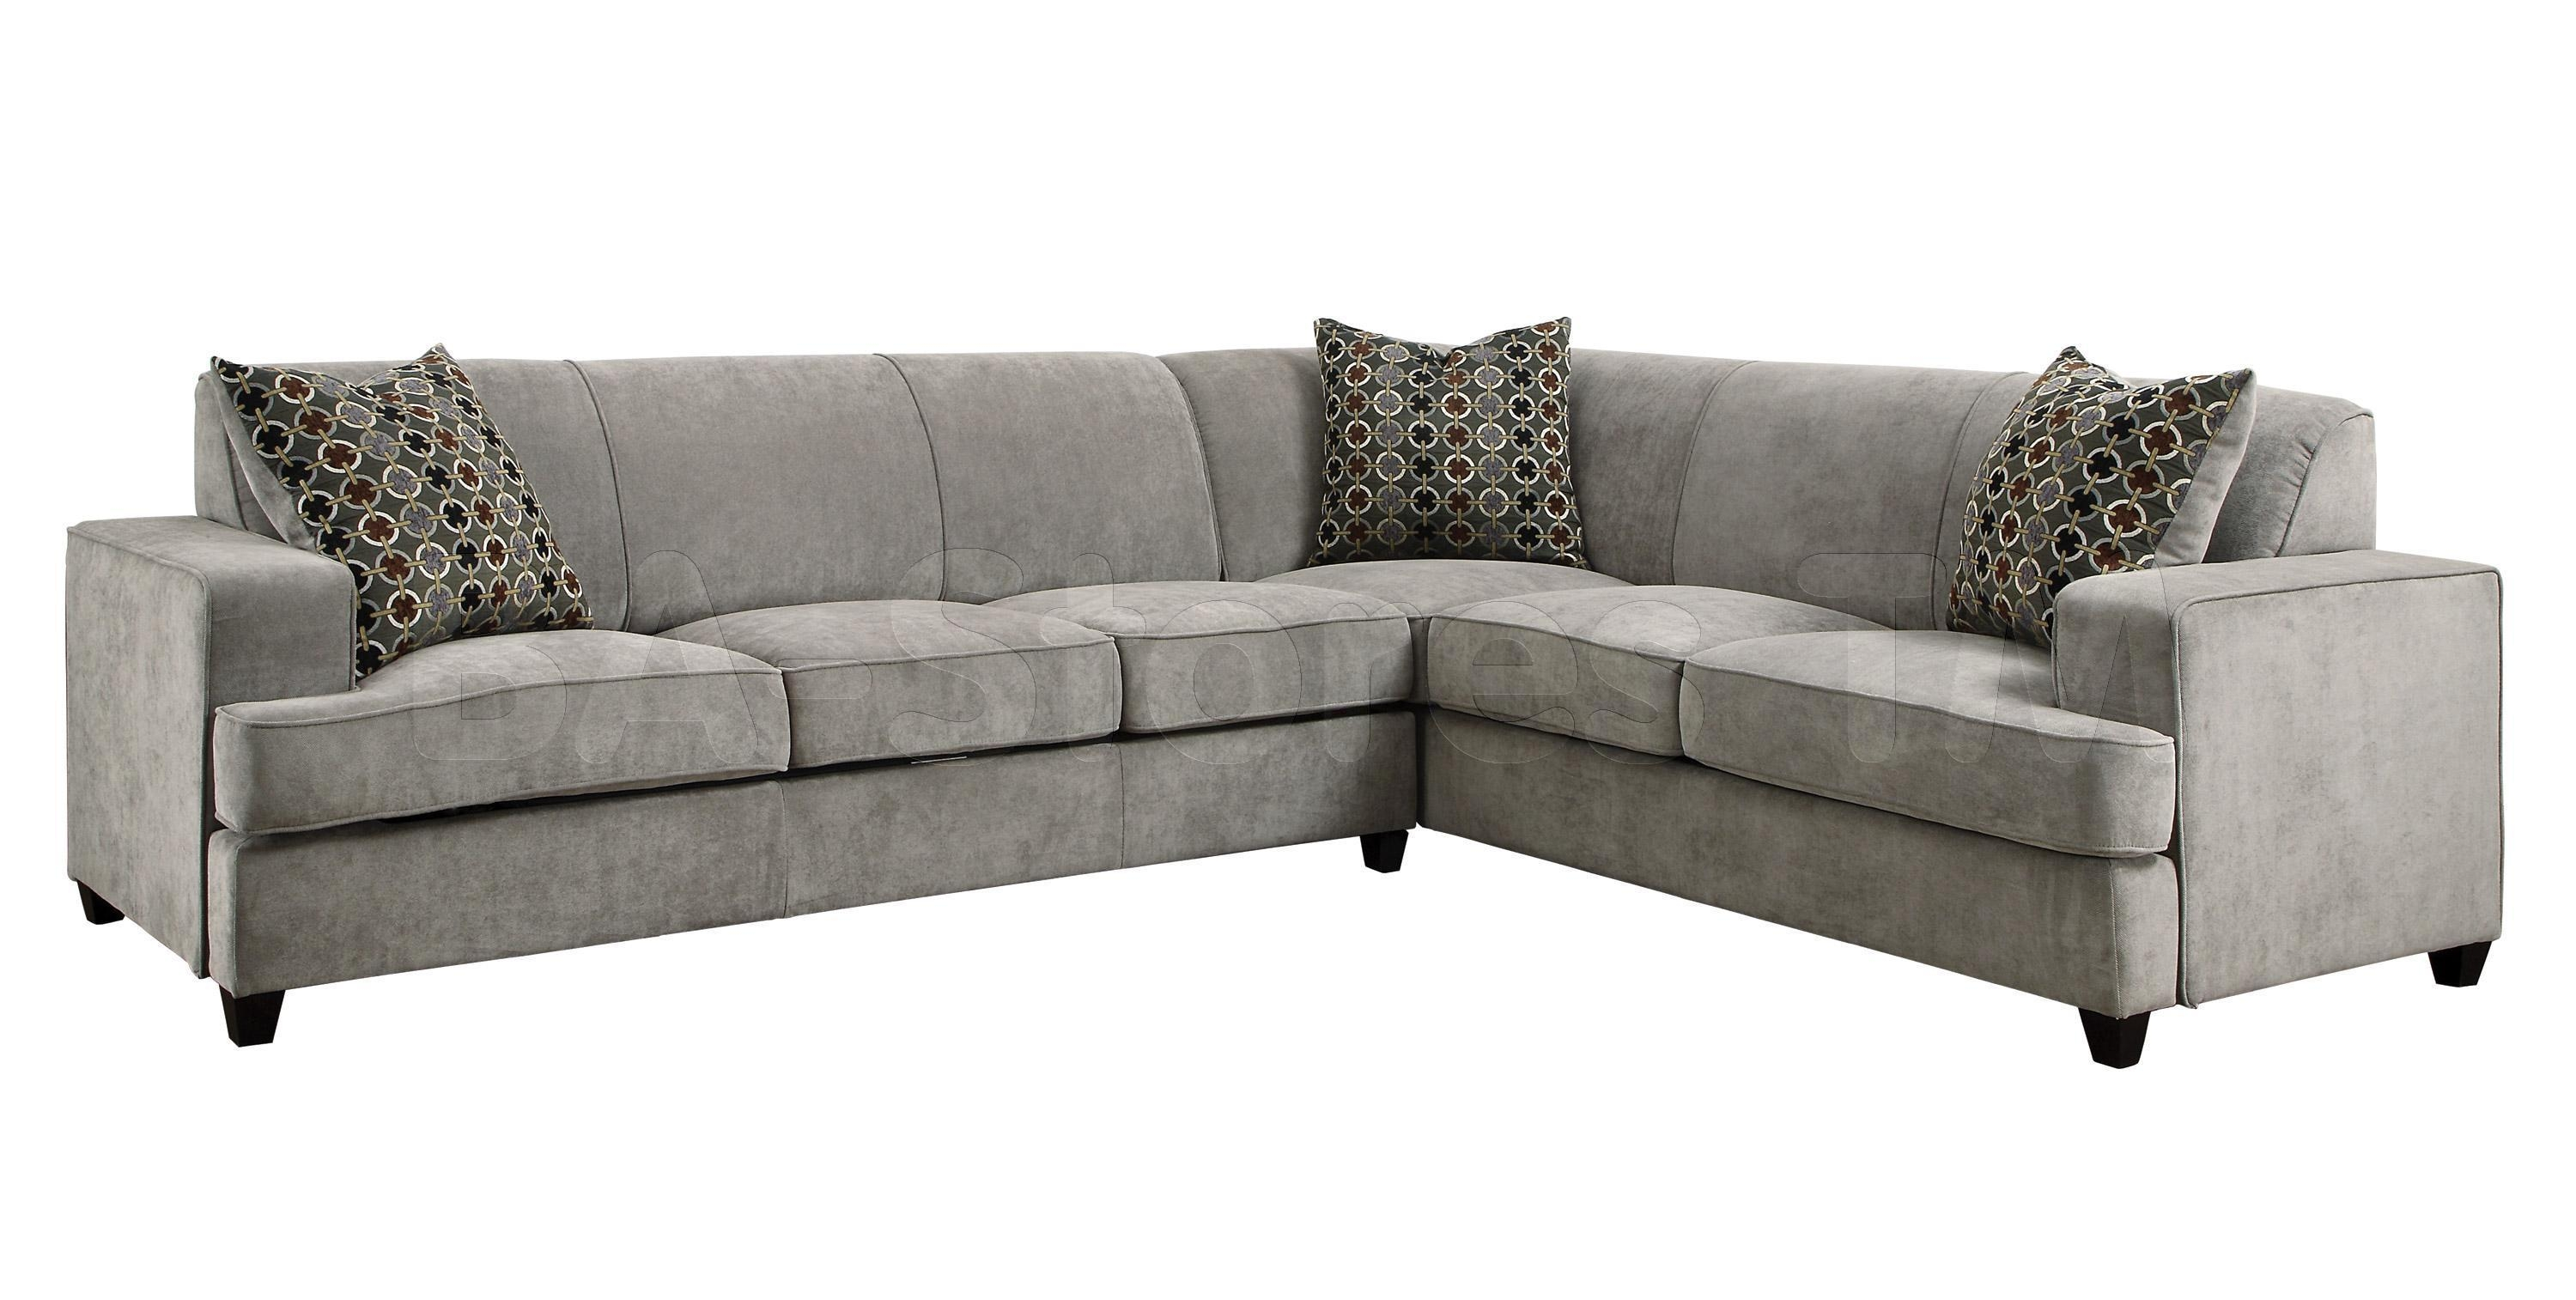 Brown Sectional Sofa With Sleeper Storage (View 13 of 15)